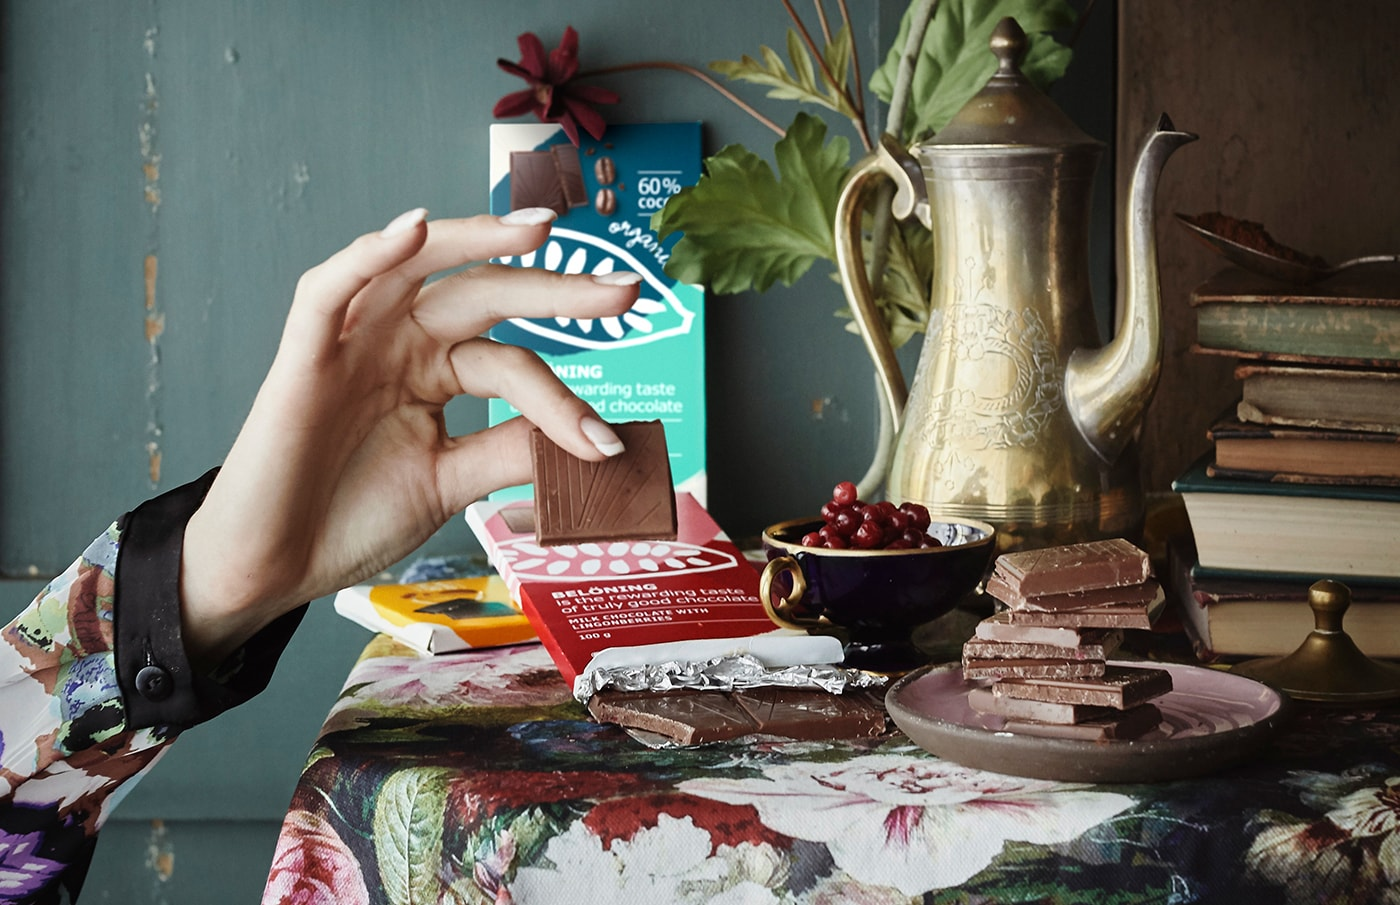 A hand picking up a square of chocolate and a table decorated with chocolate bars, books and fruits.